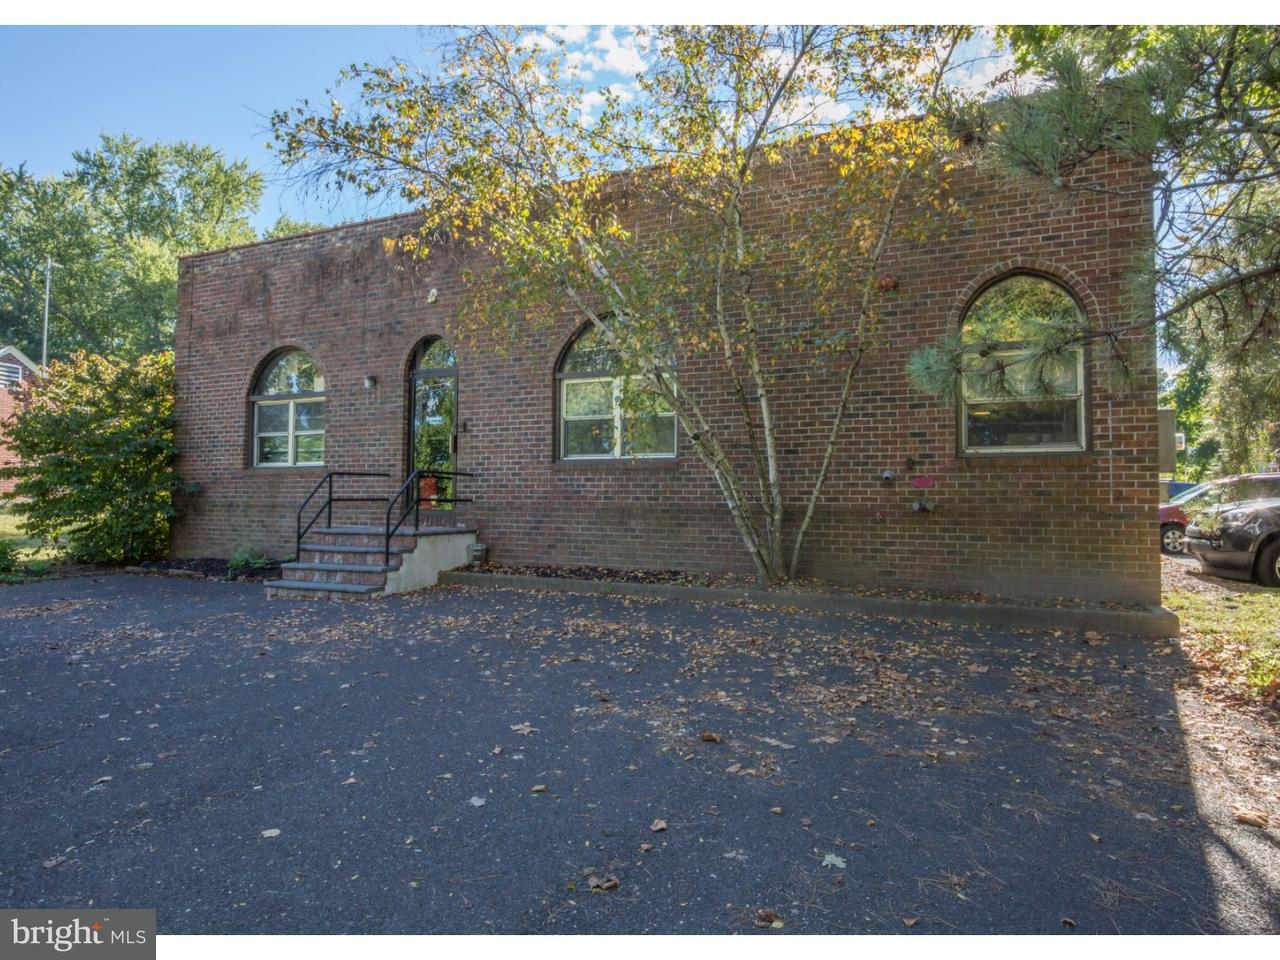 Single Family Home for Sale at 37 S DELAWARE Avenue Yardley, Pennsylvania 19067 United States